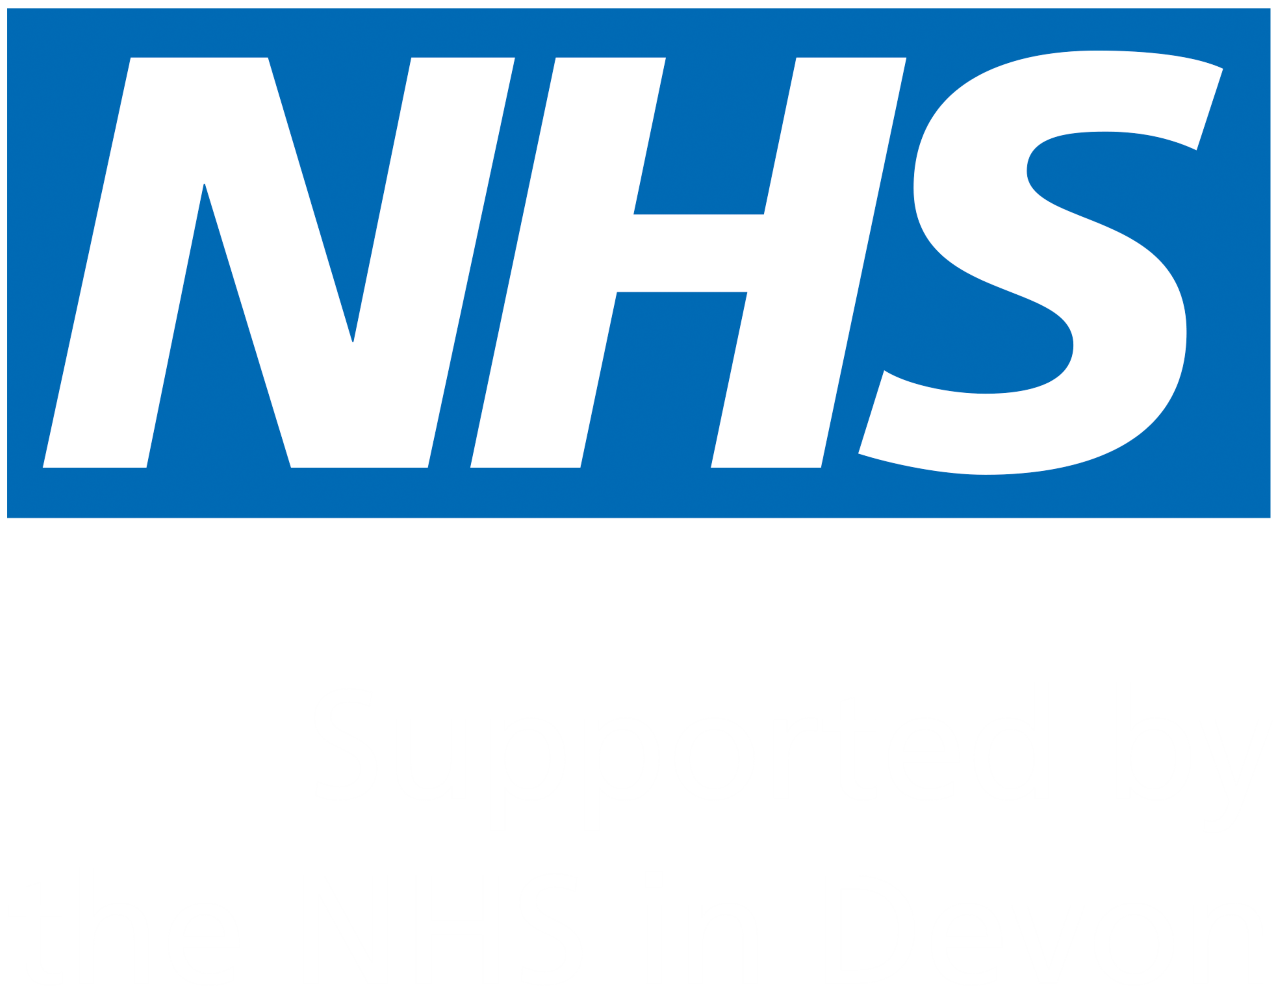 Supported by the NHS in Devon